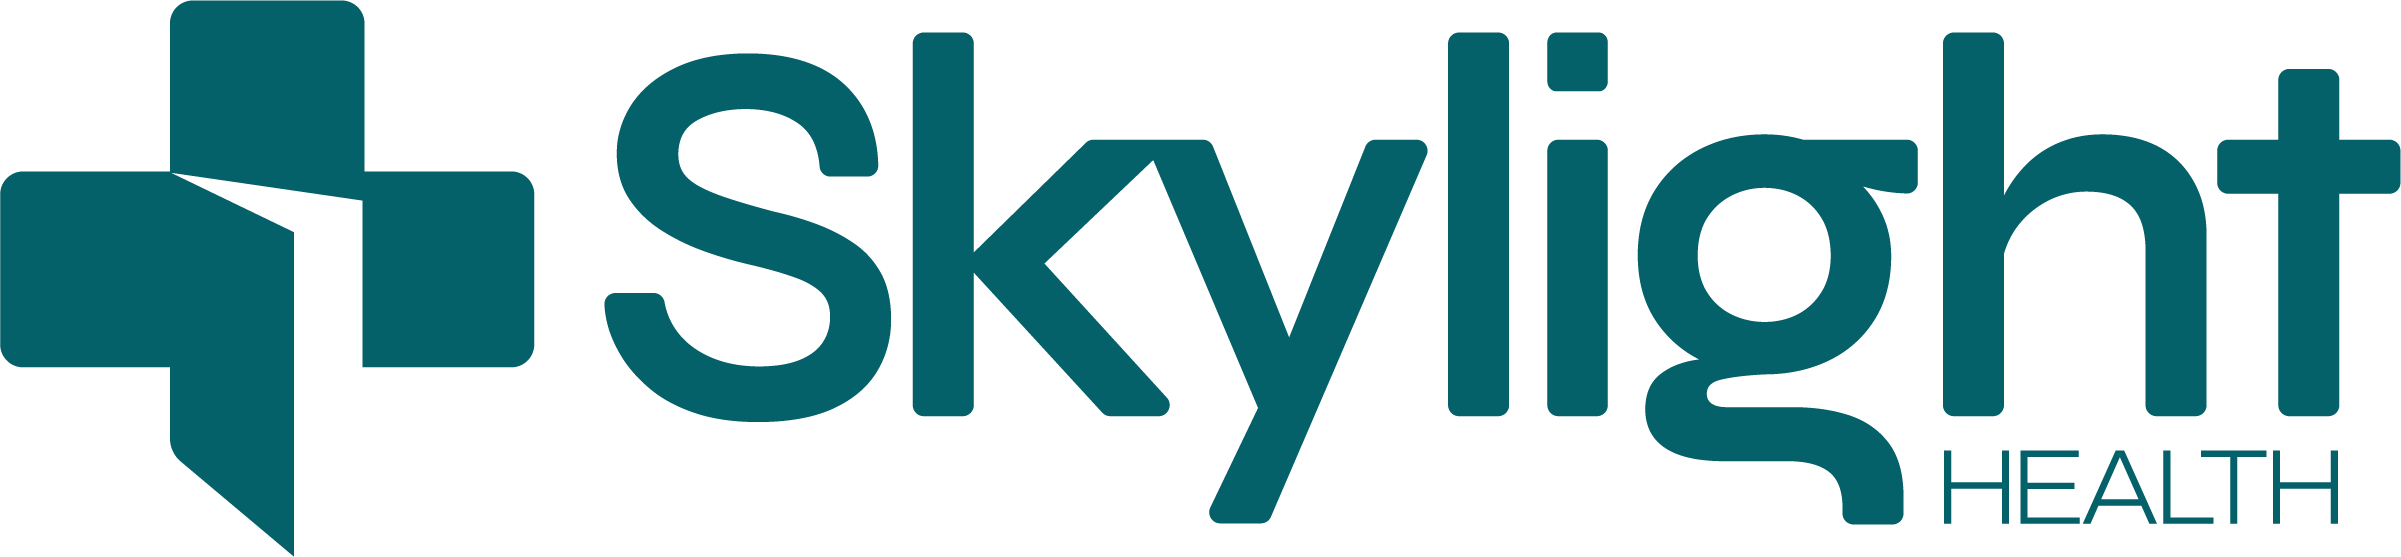 Skylight Health Announces Rebrand and Corporate Plan to Provide Primary Care Nationally to Millions of Americans